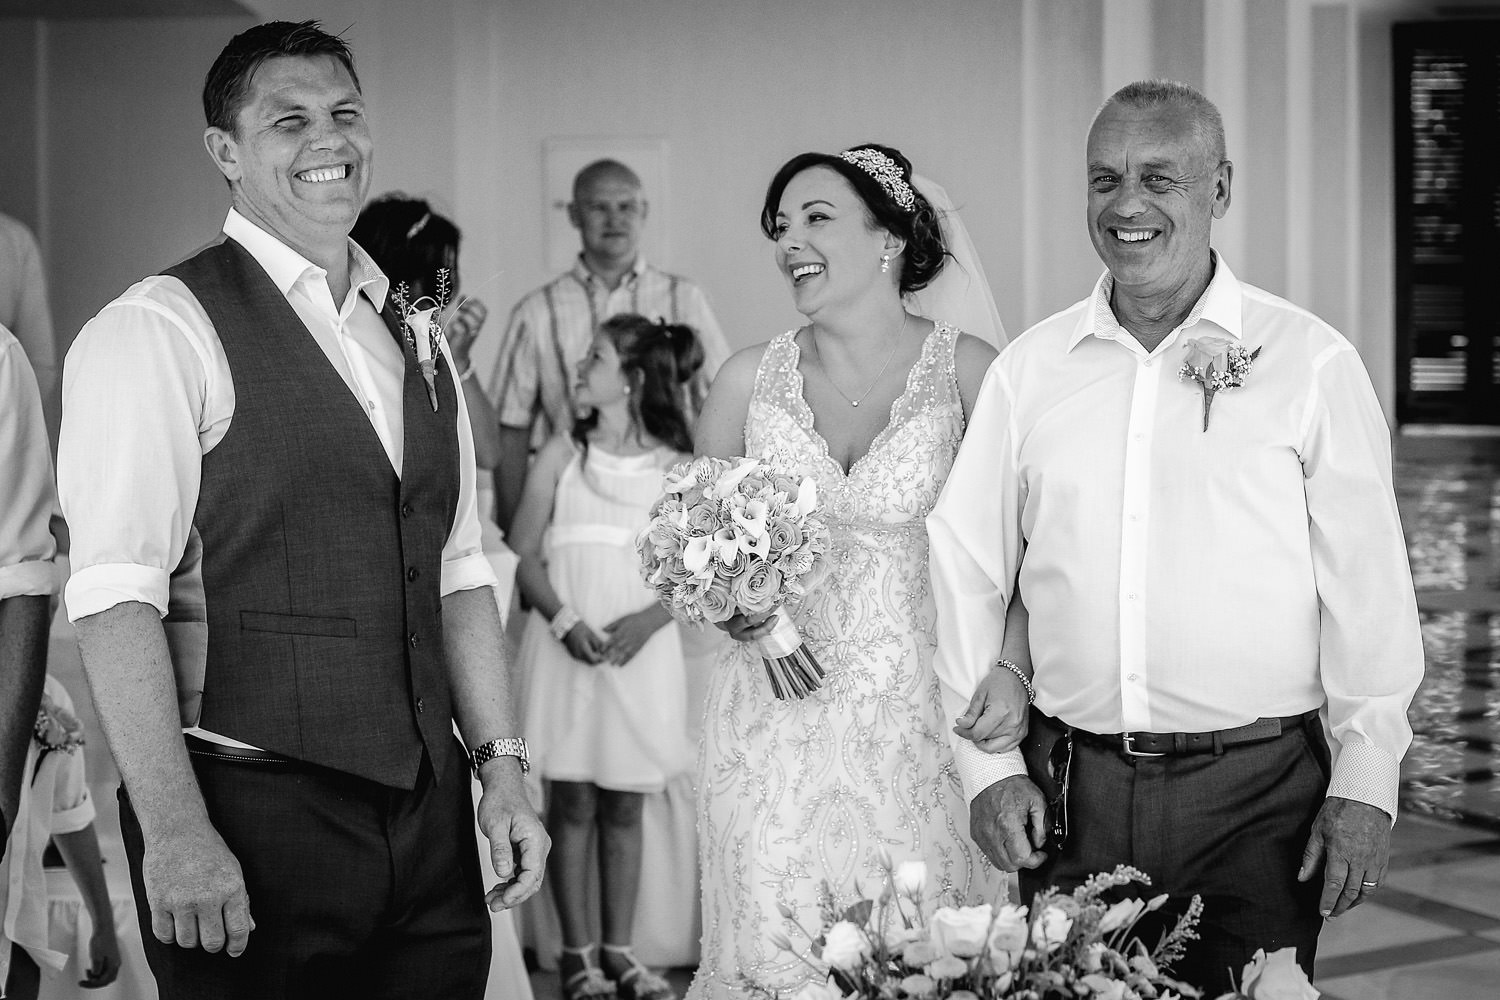 Alexander the great hotel Paphos wedding photography